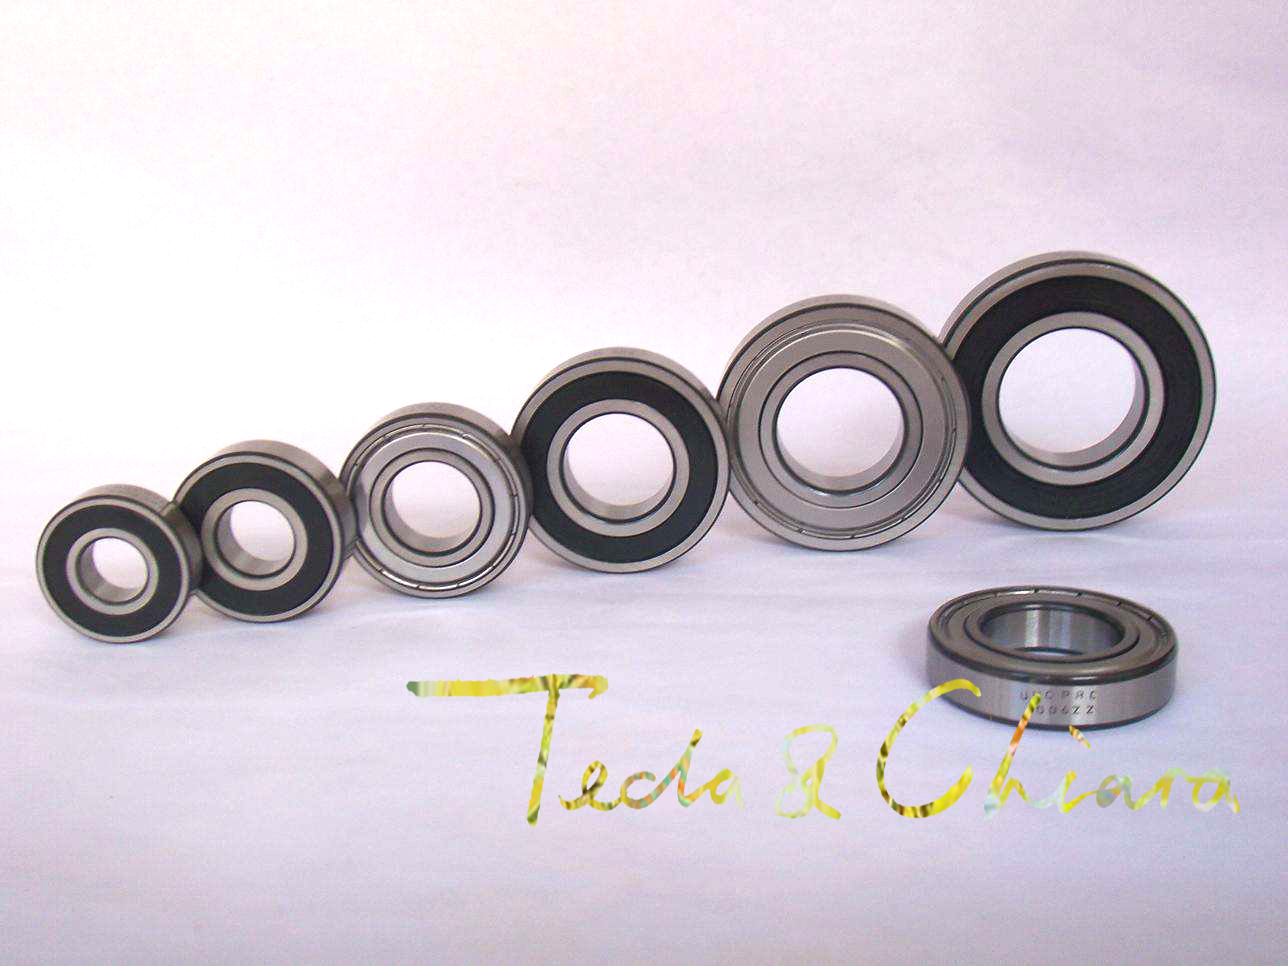 688-688zz-688rs-688-2z-688z-688-2rs-zz-rs-rz-2rz-deep-groove-ball-bearings-8-x-16-x-5mm